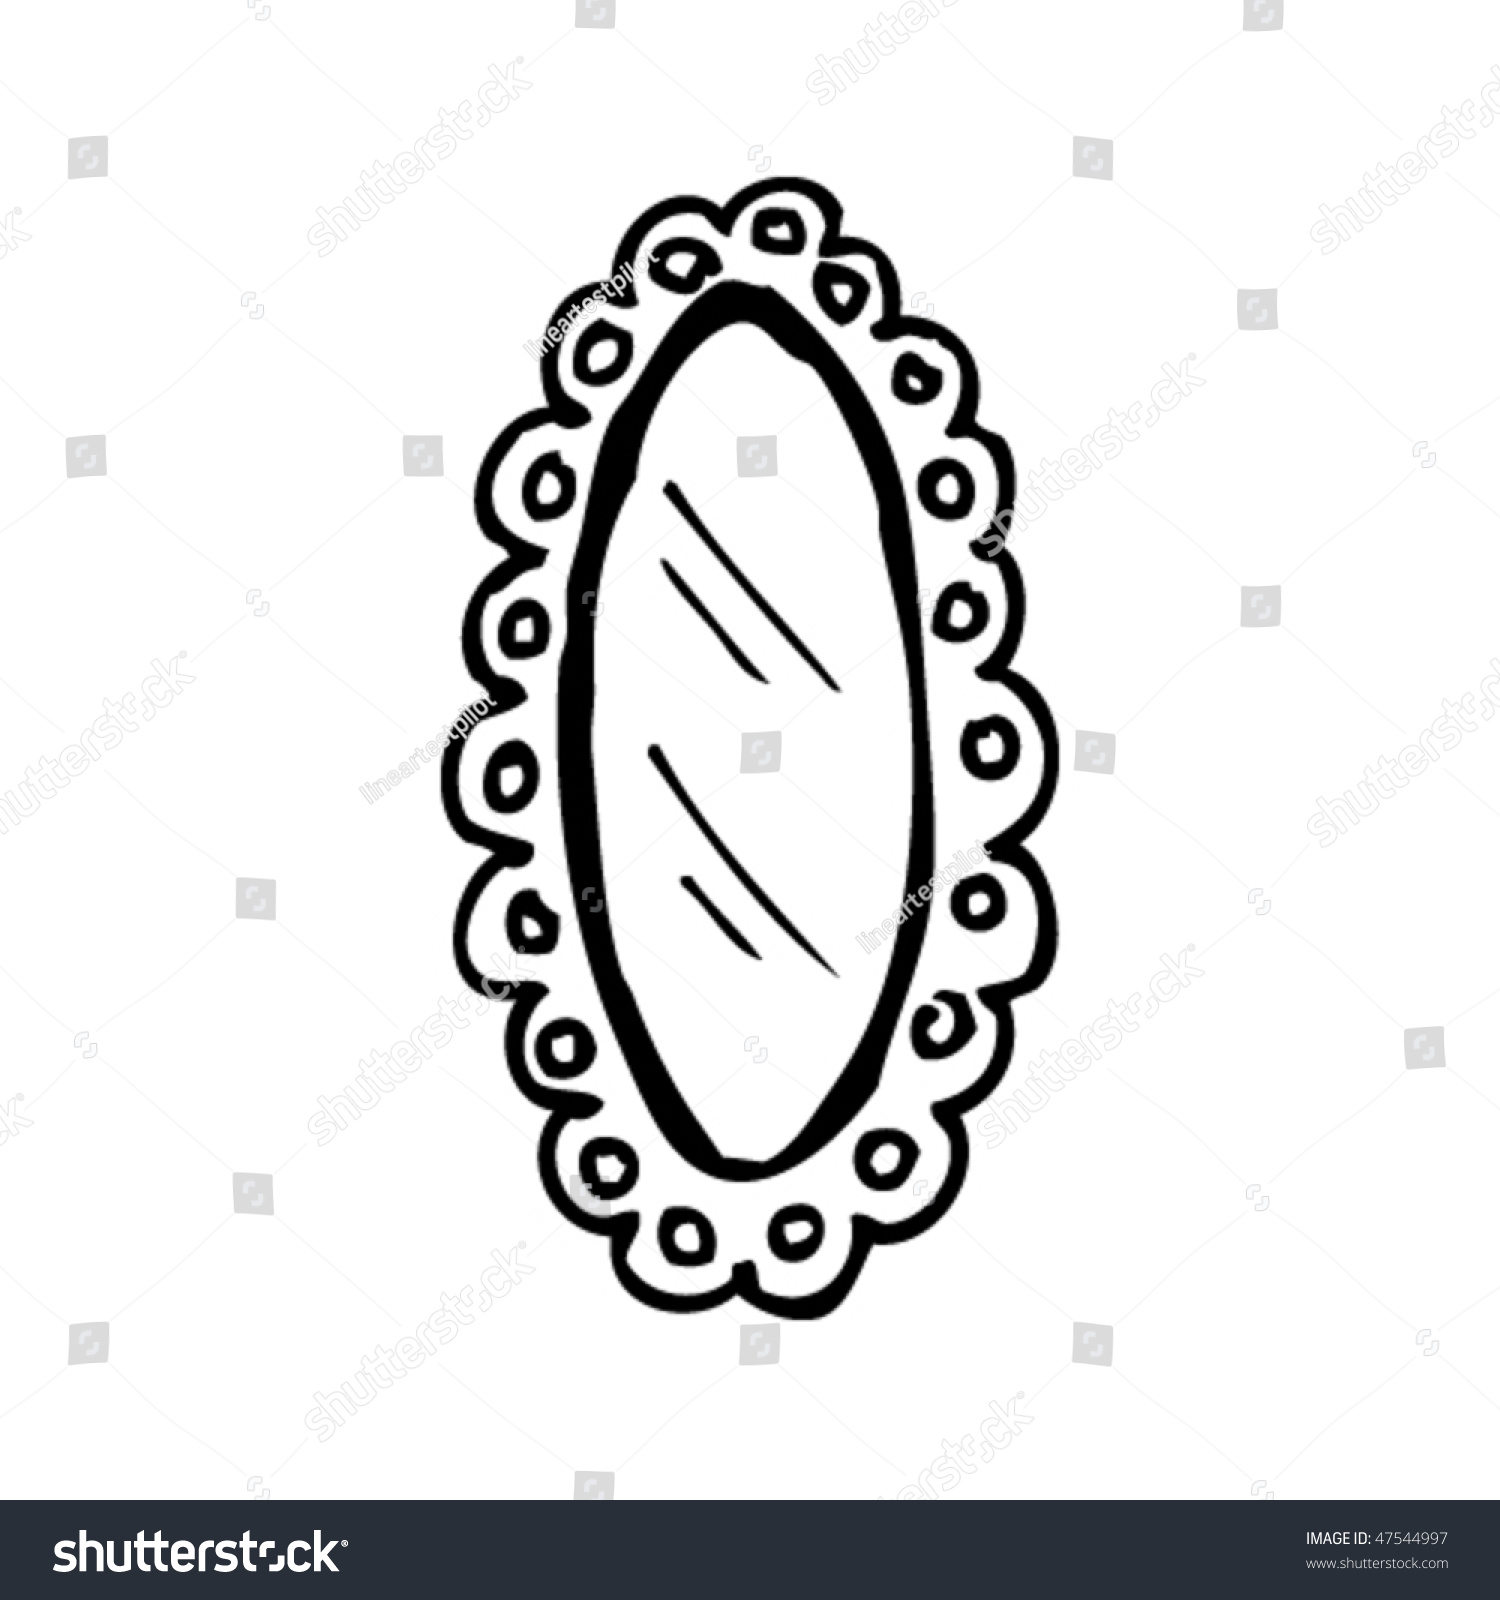 Drawing of a mirror stock vector illustration 47544997 for Mirror drawing